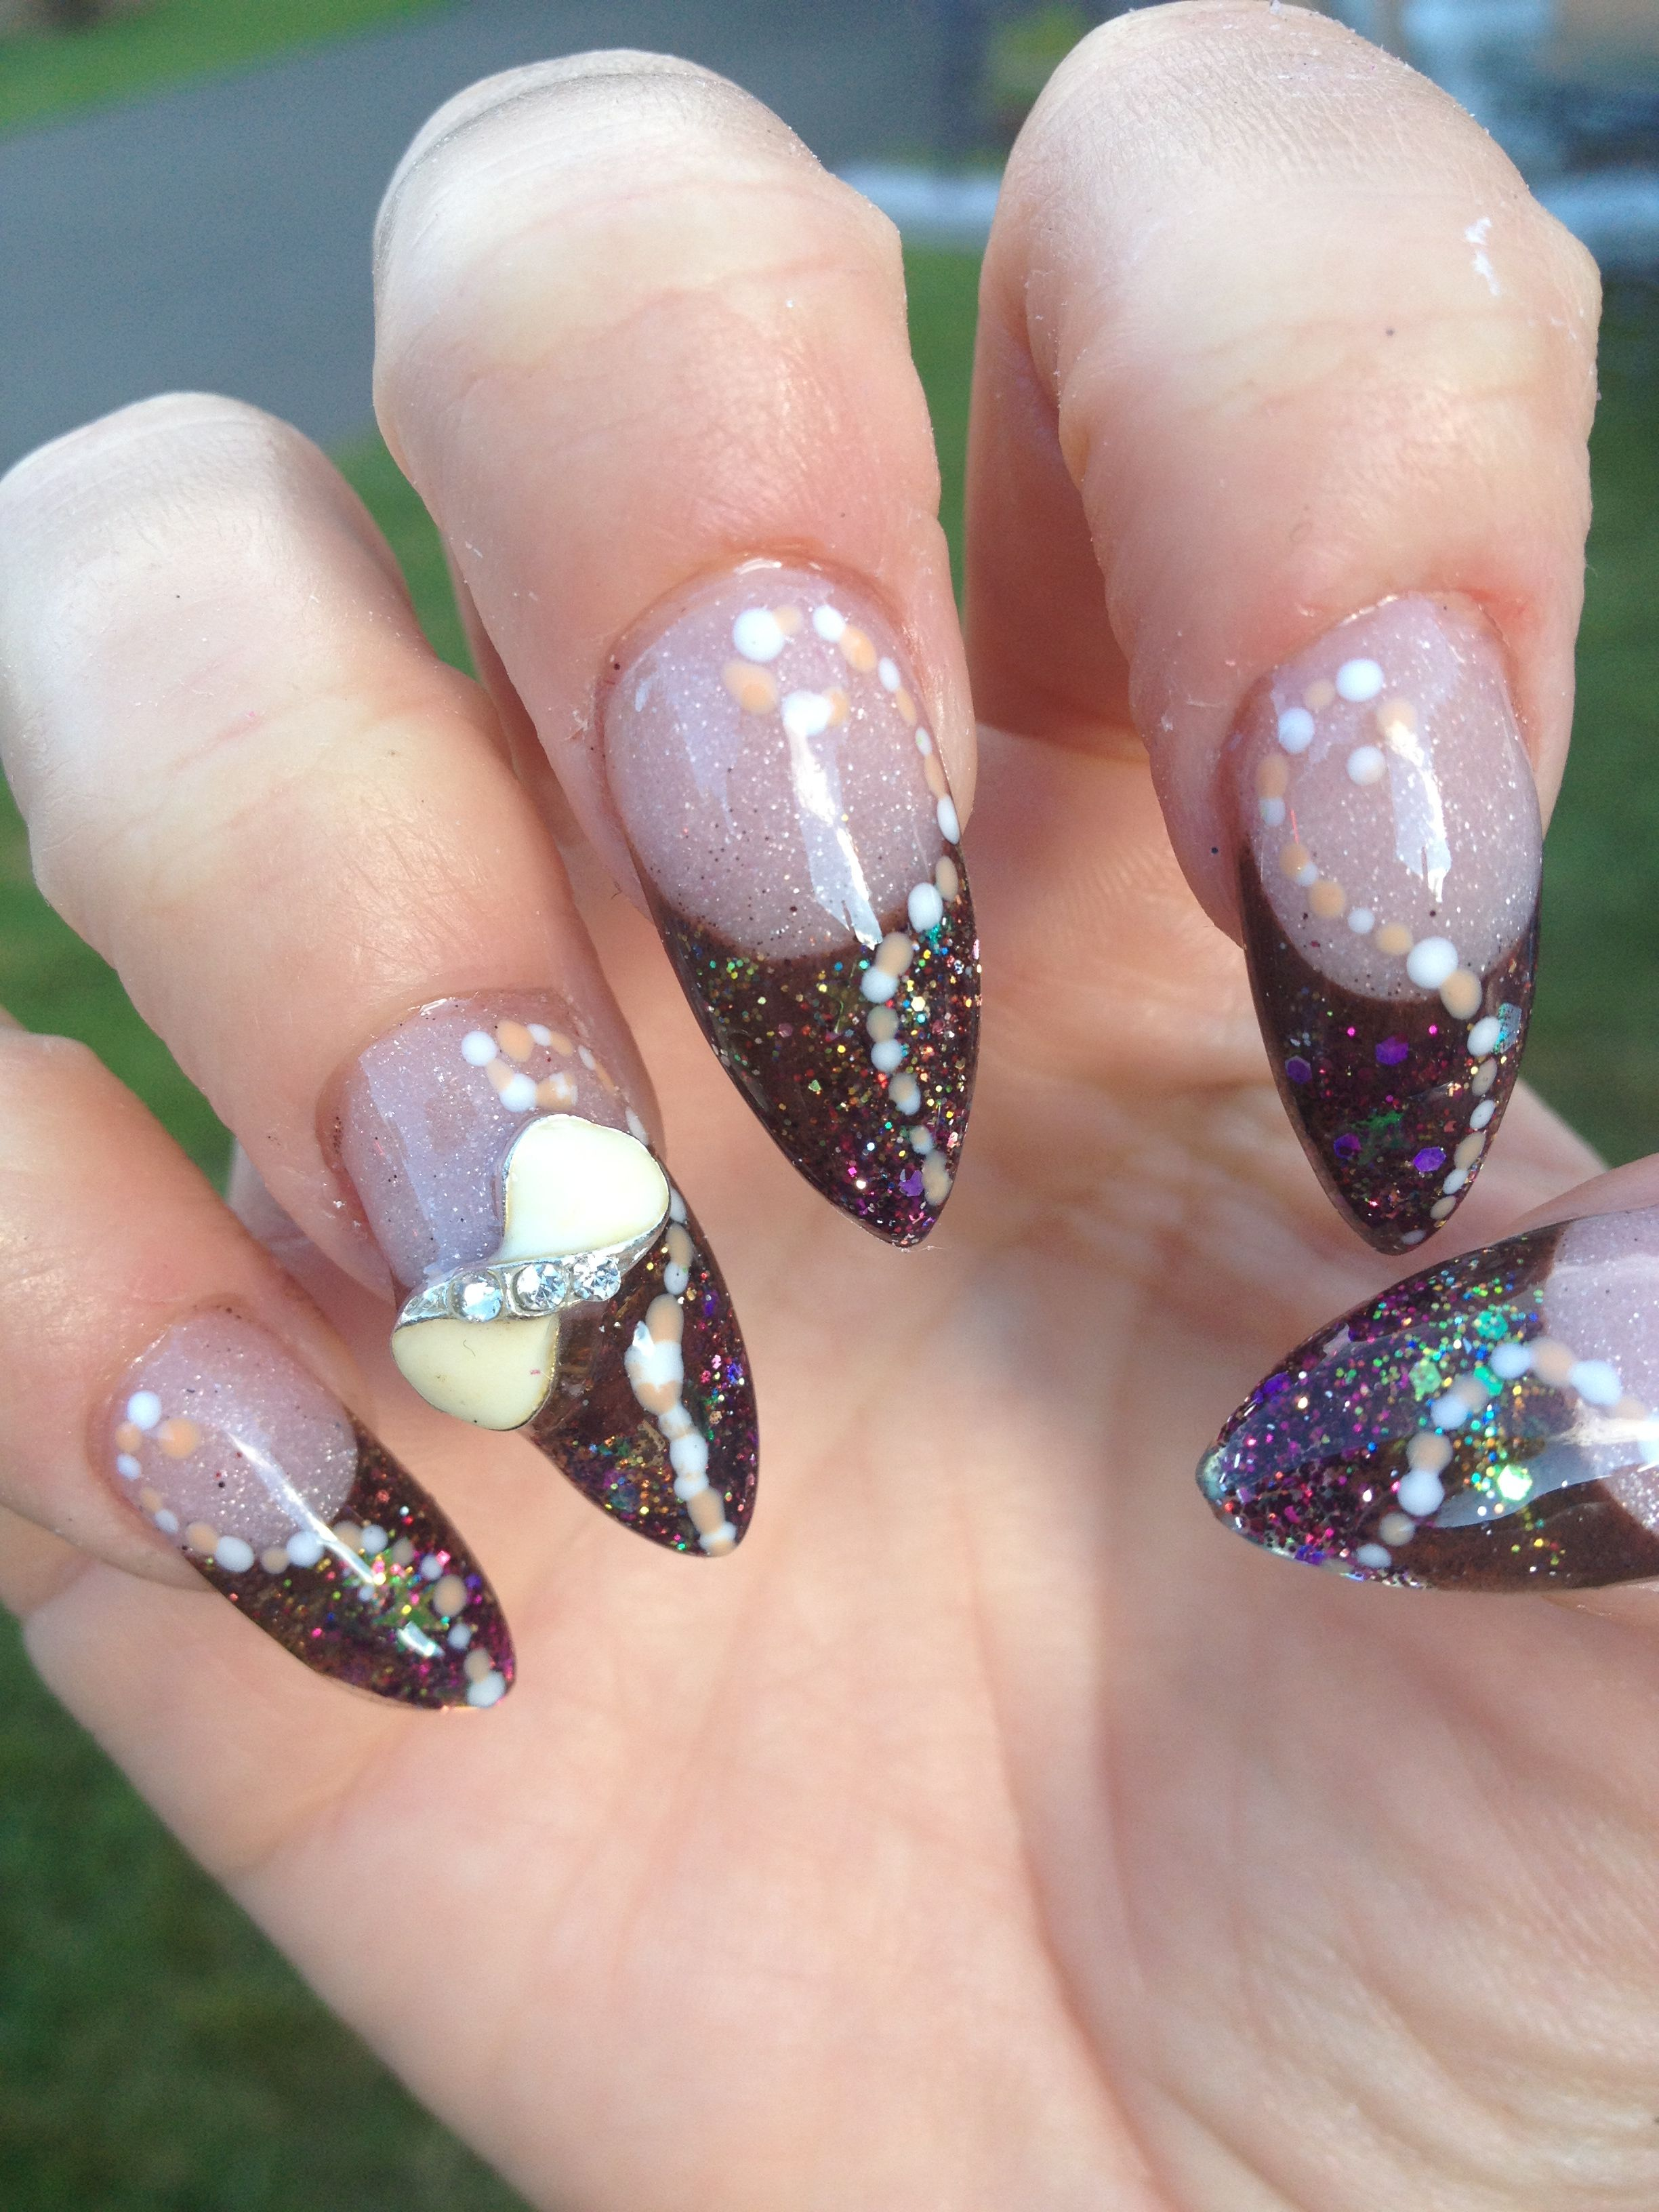 Acrylic nail design almond shape nails pinterest for Acrylic nail decoration